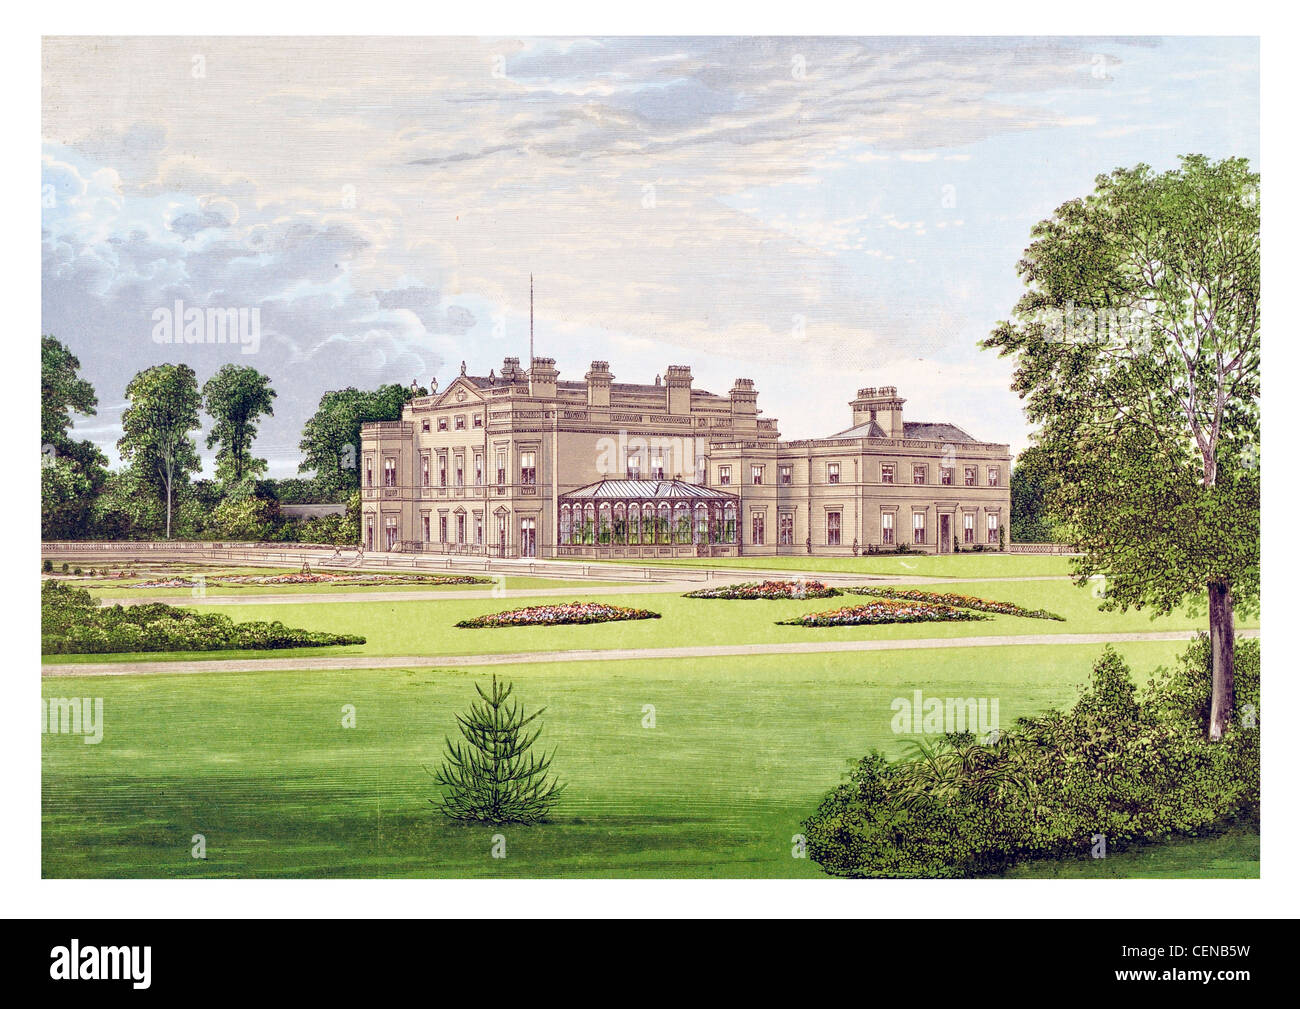 Dalton Hall Britain England UK Parkland Park Mansion Manor House Stately Home Palace Estate Castle Landscaped Garden